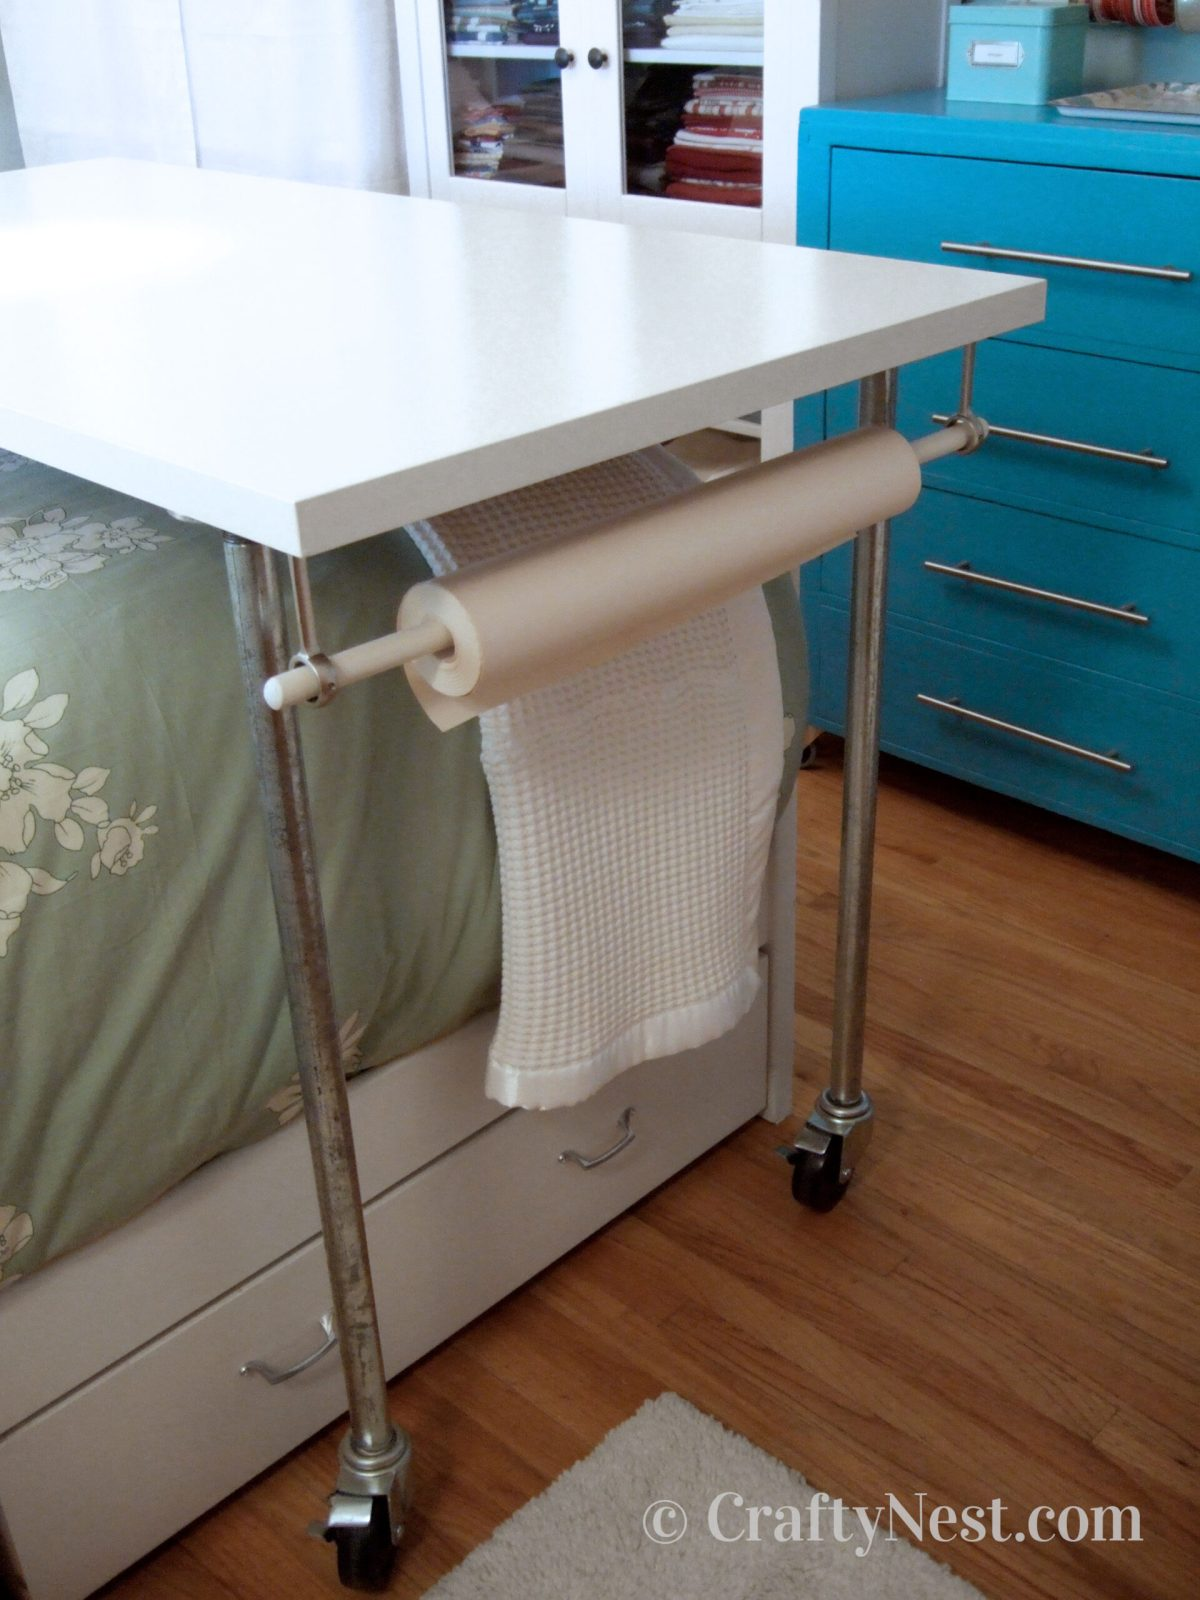 Over-the-bed table, photo